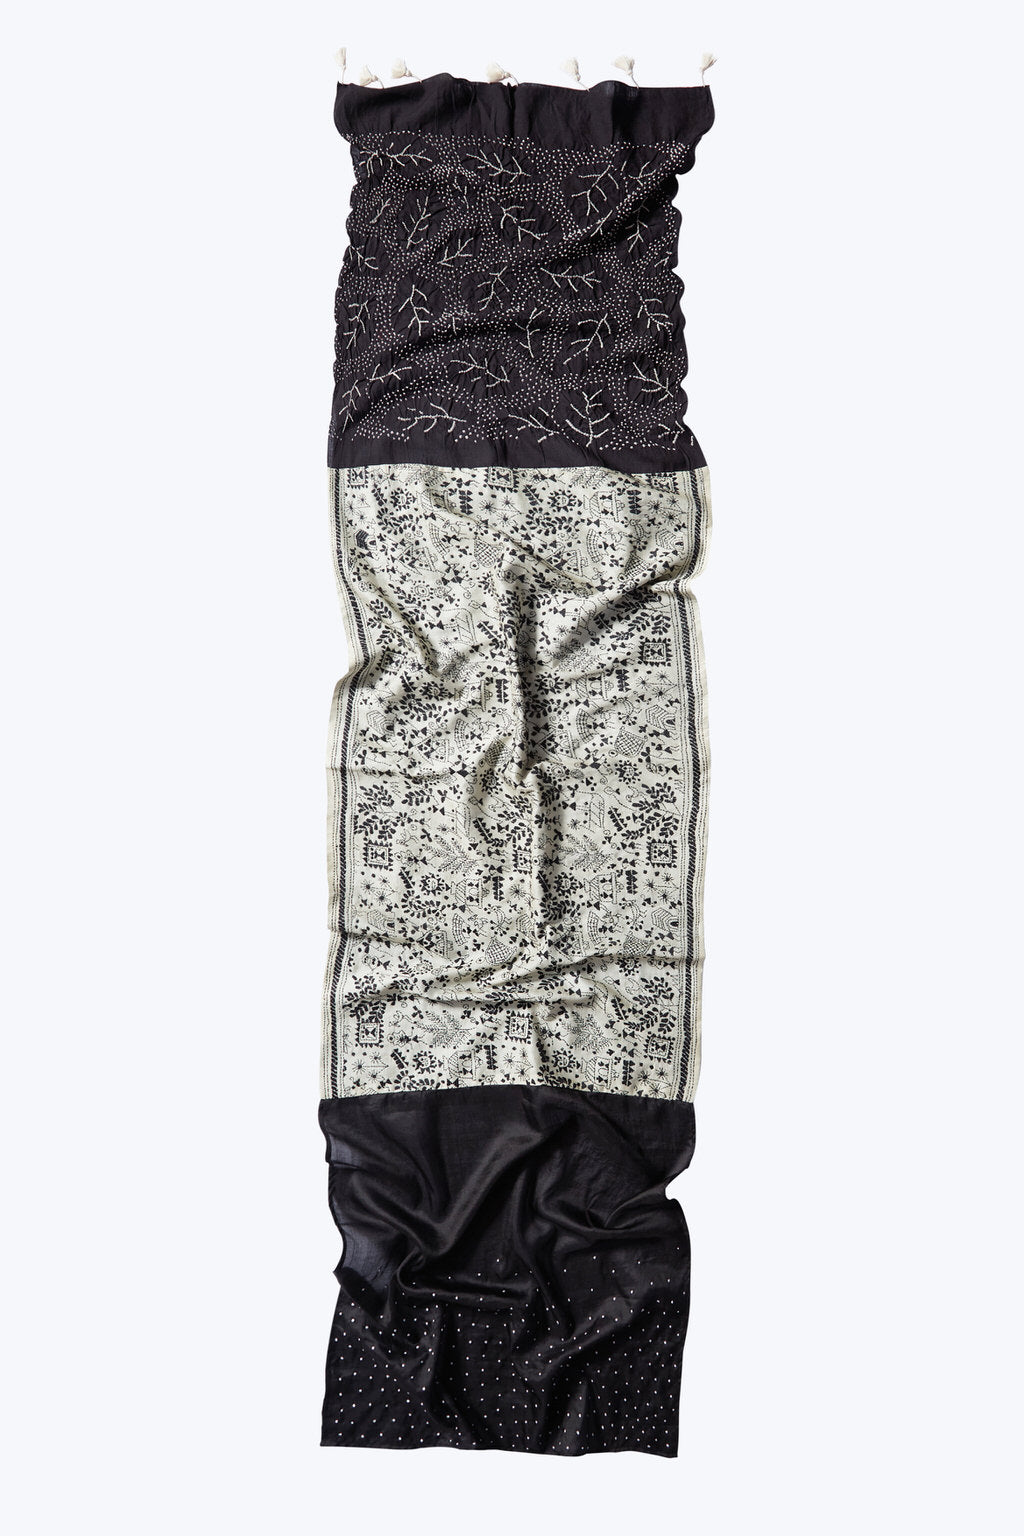 A Celebration of Life - Long Black & White Silk Scarf